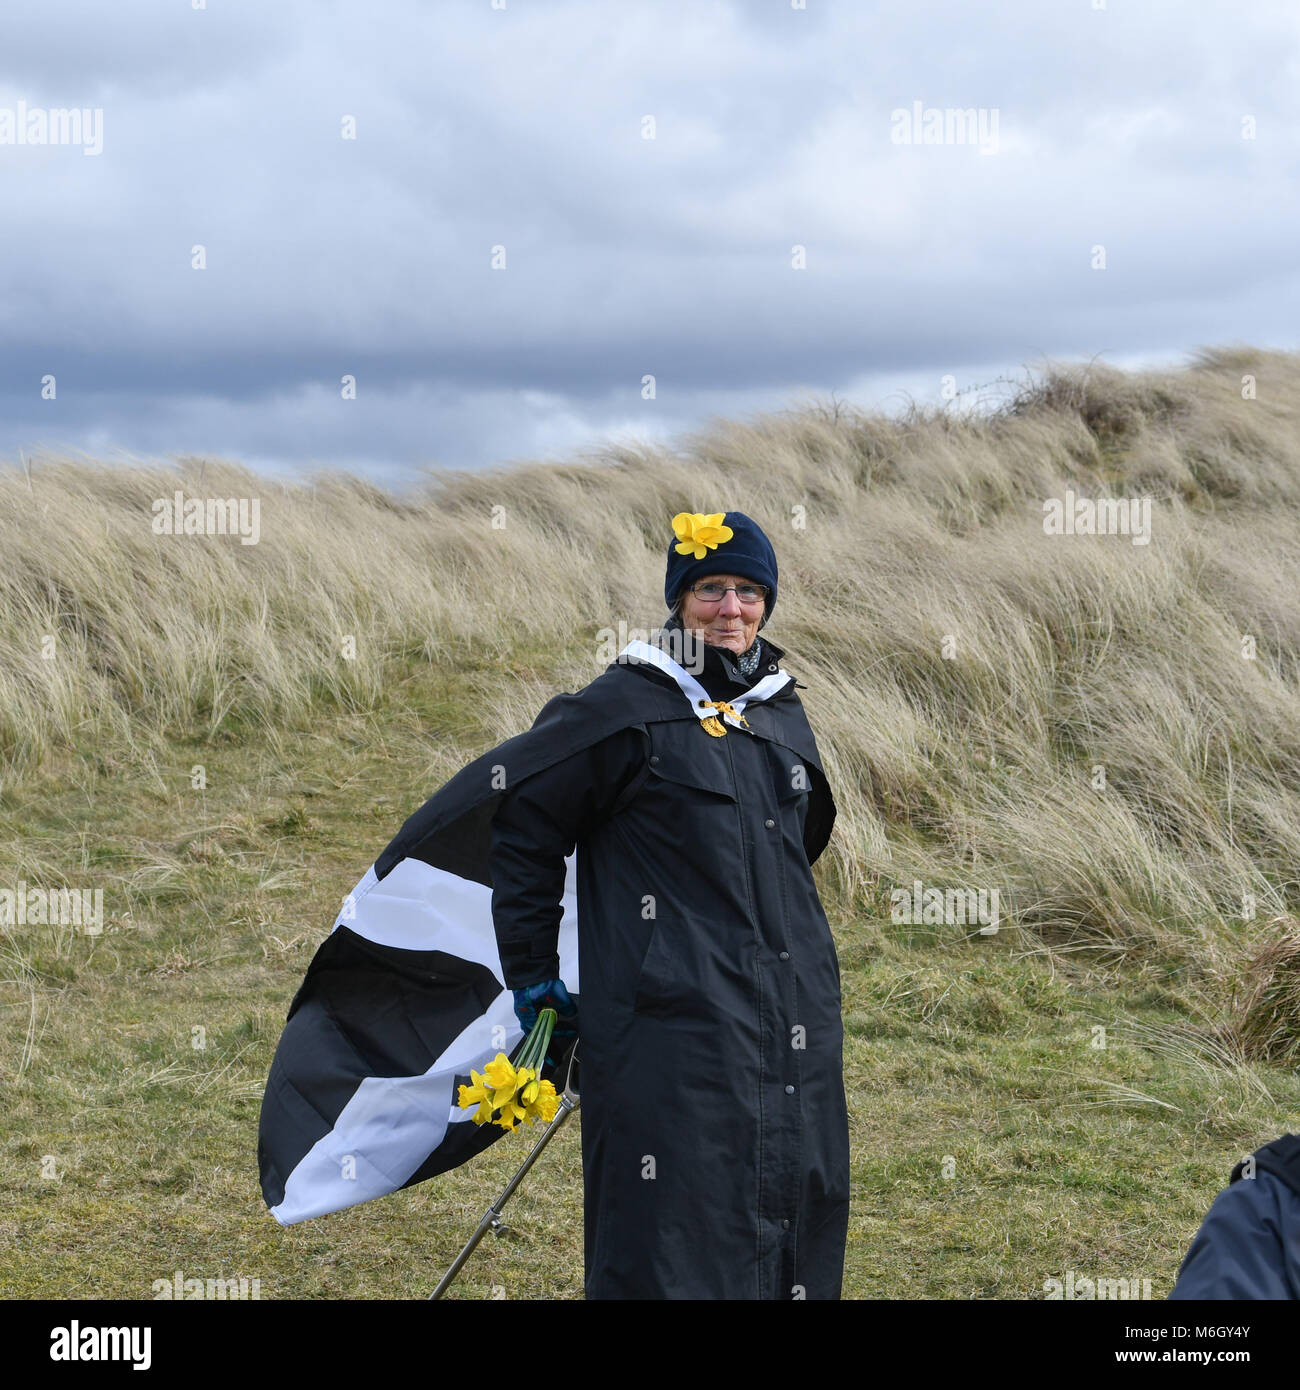 Perran sands, perranporth, cornwall, U.K. The annual St Piran play and march takes place on perran sands, ahead - Stock Image